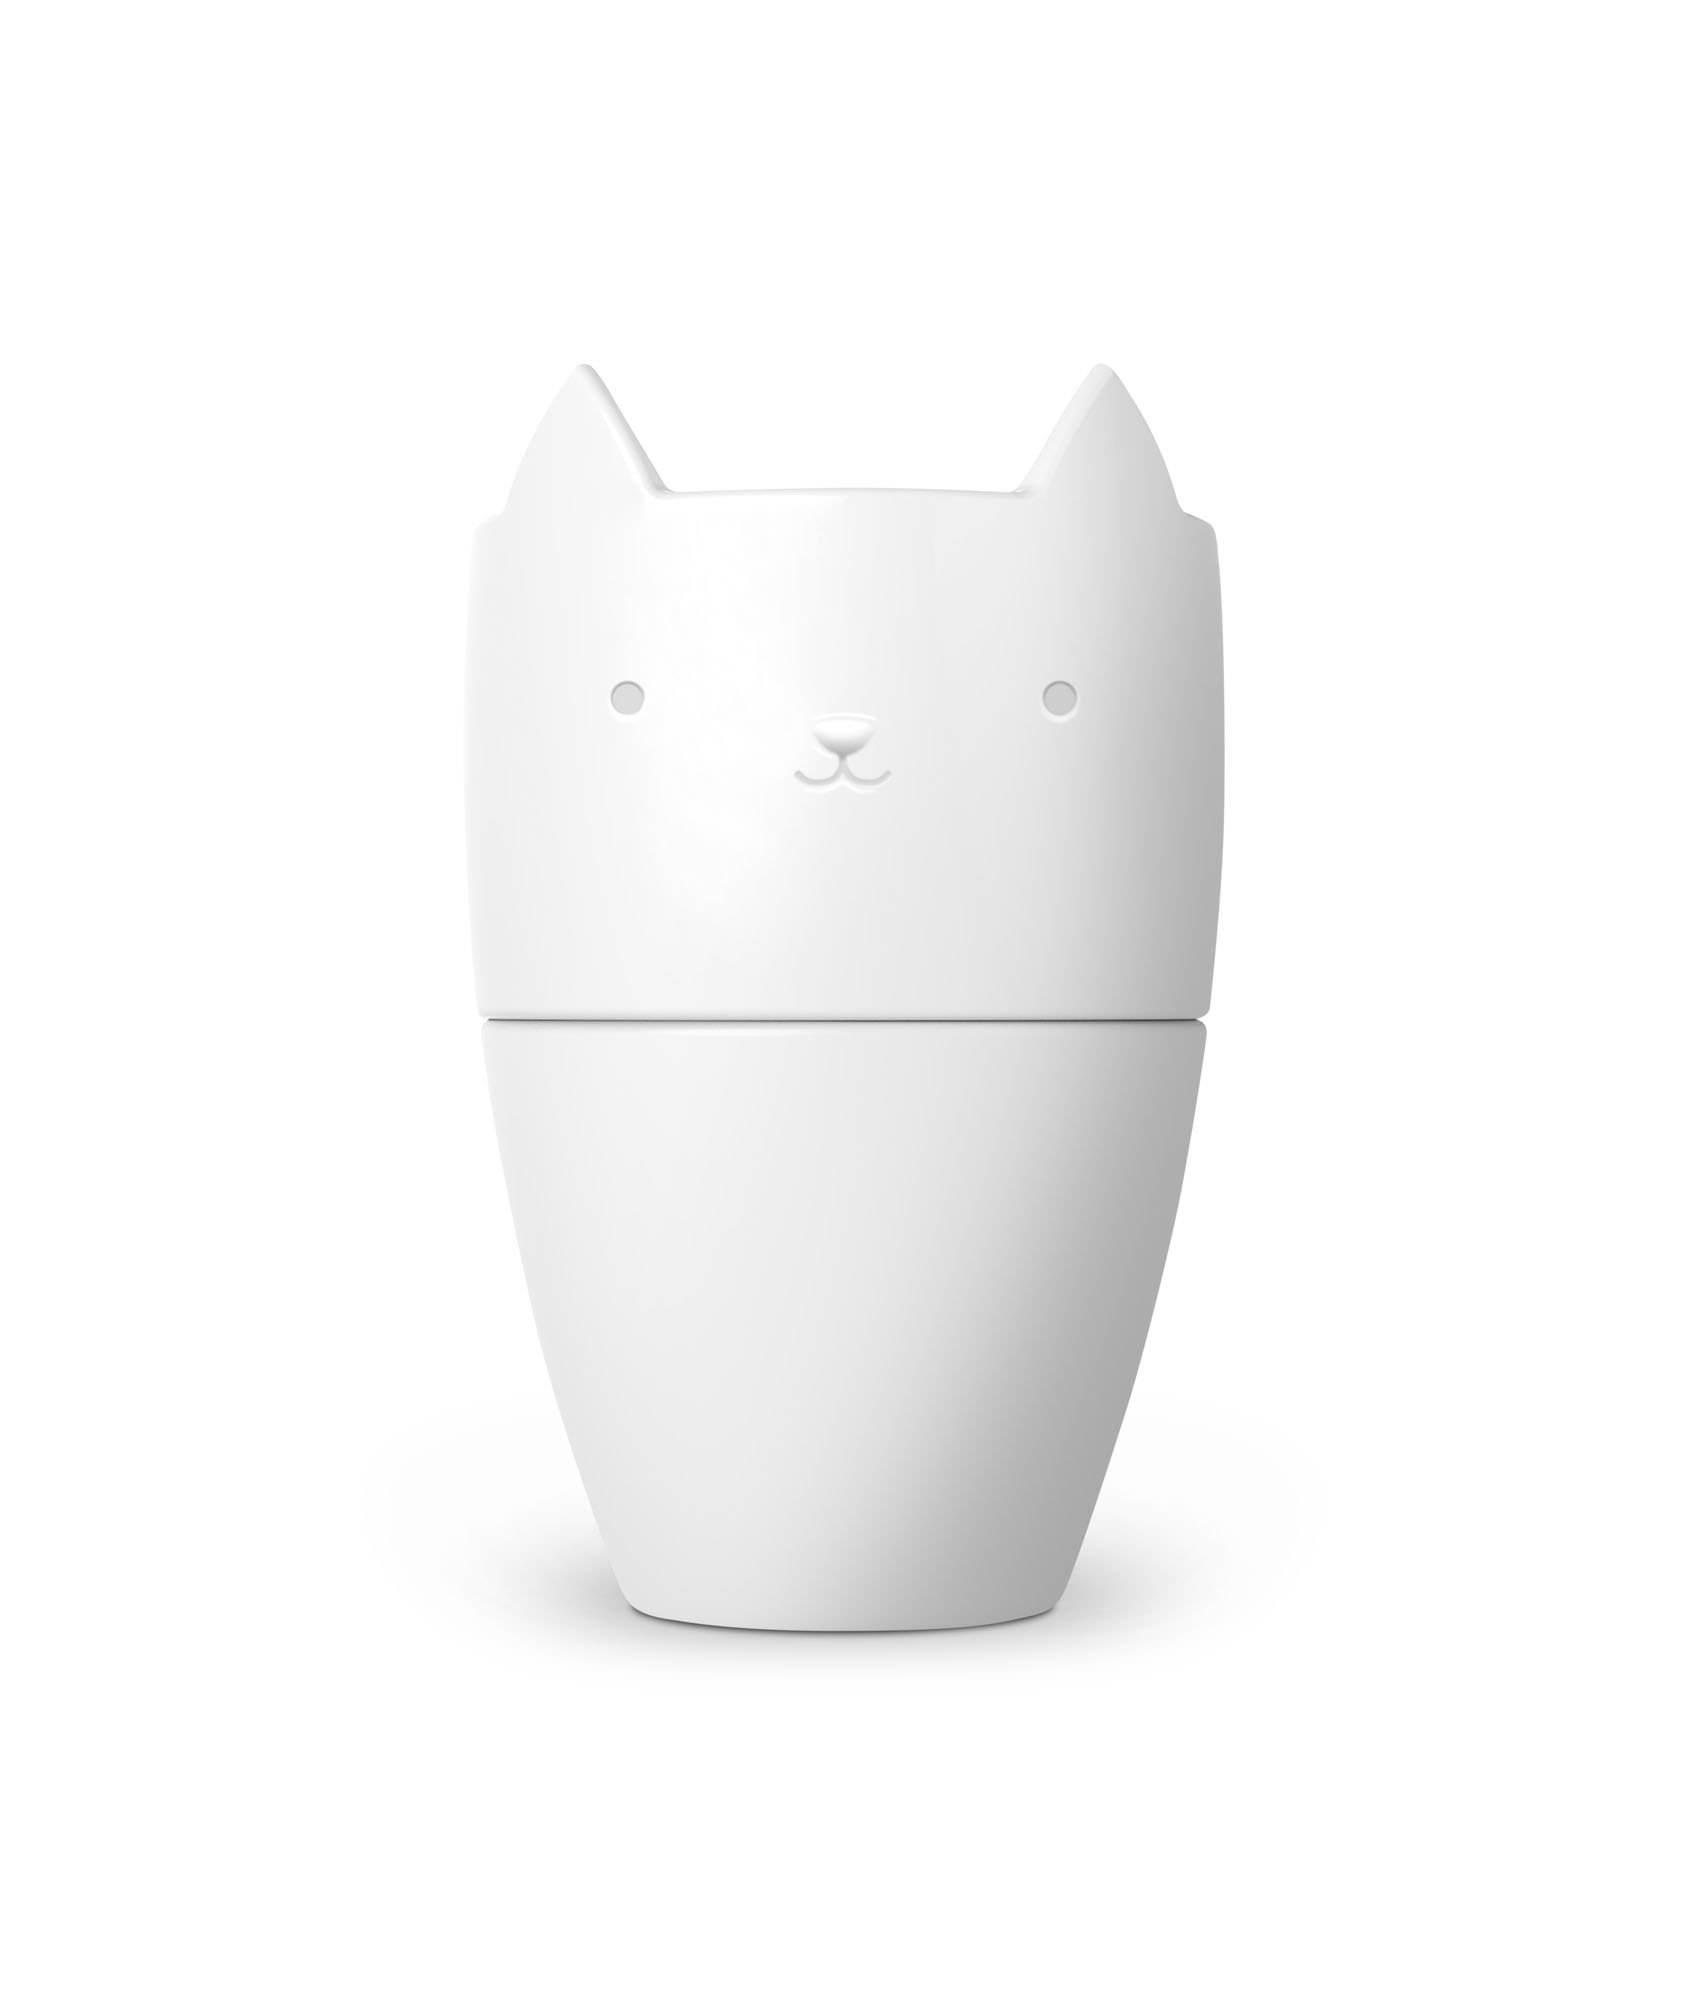 Fred 5229133 Purr Over Cat-Style Porcelain Pour Over Coffee Brewer, White by Fred & Friends (Image #1)